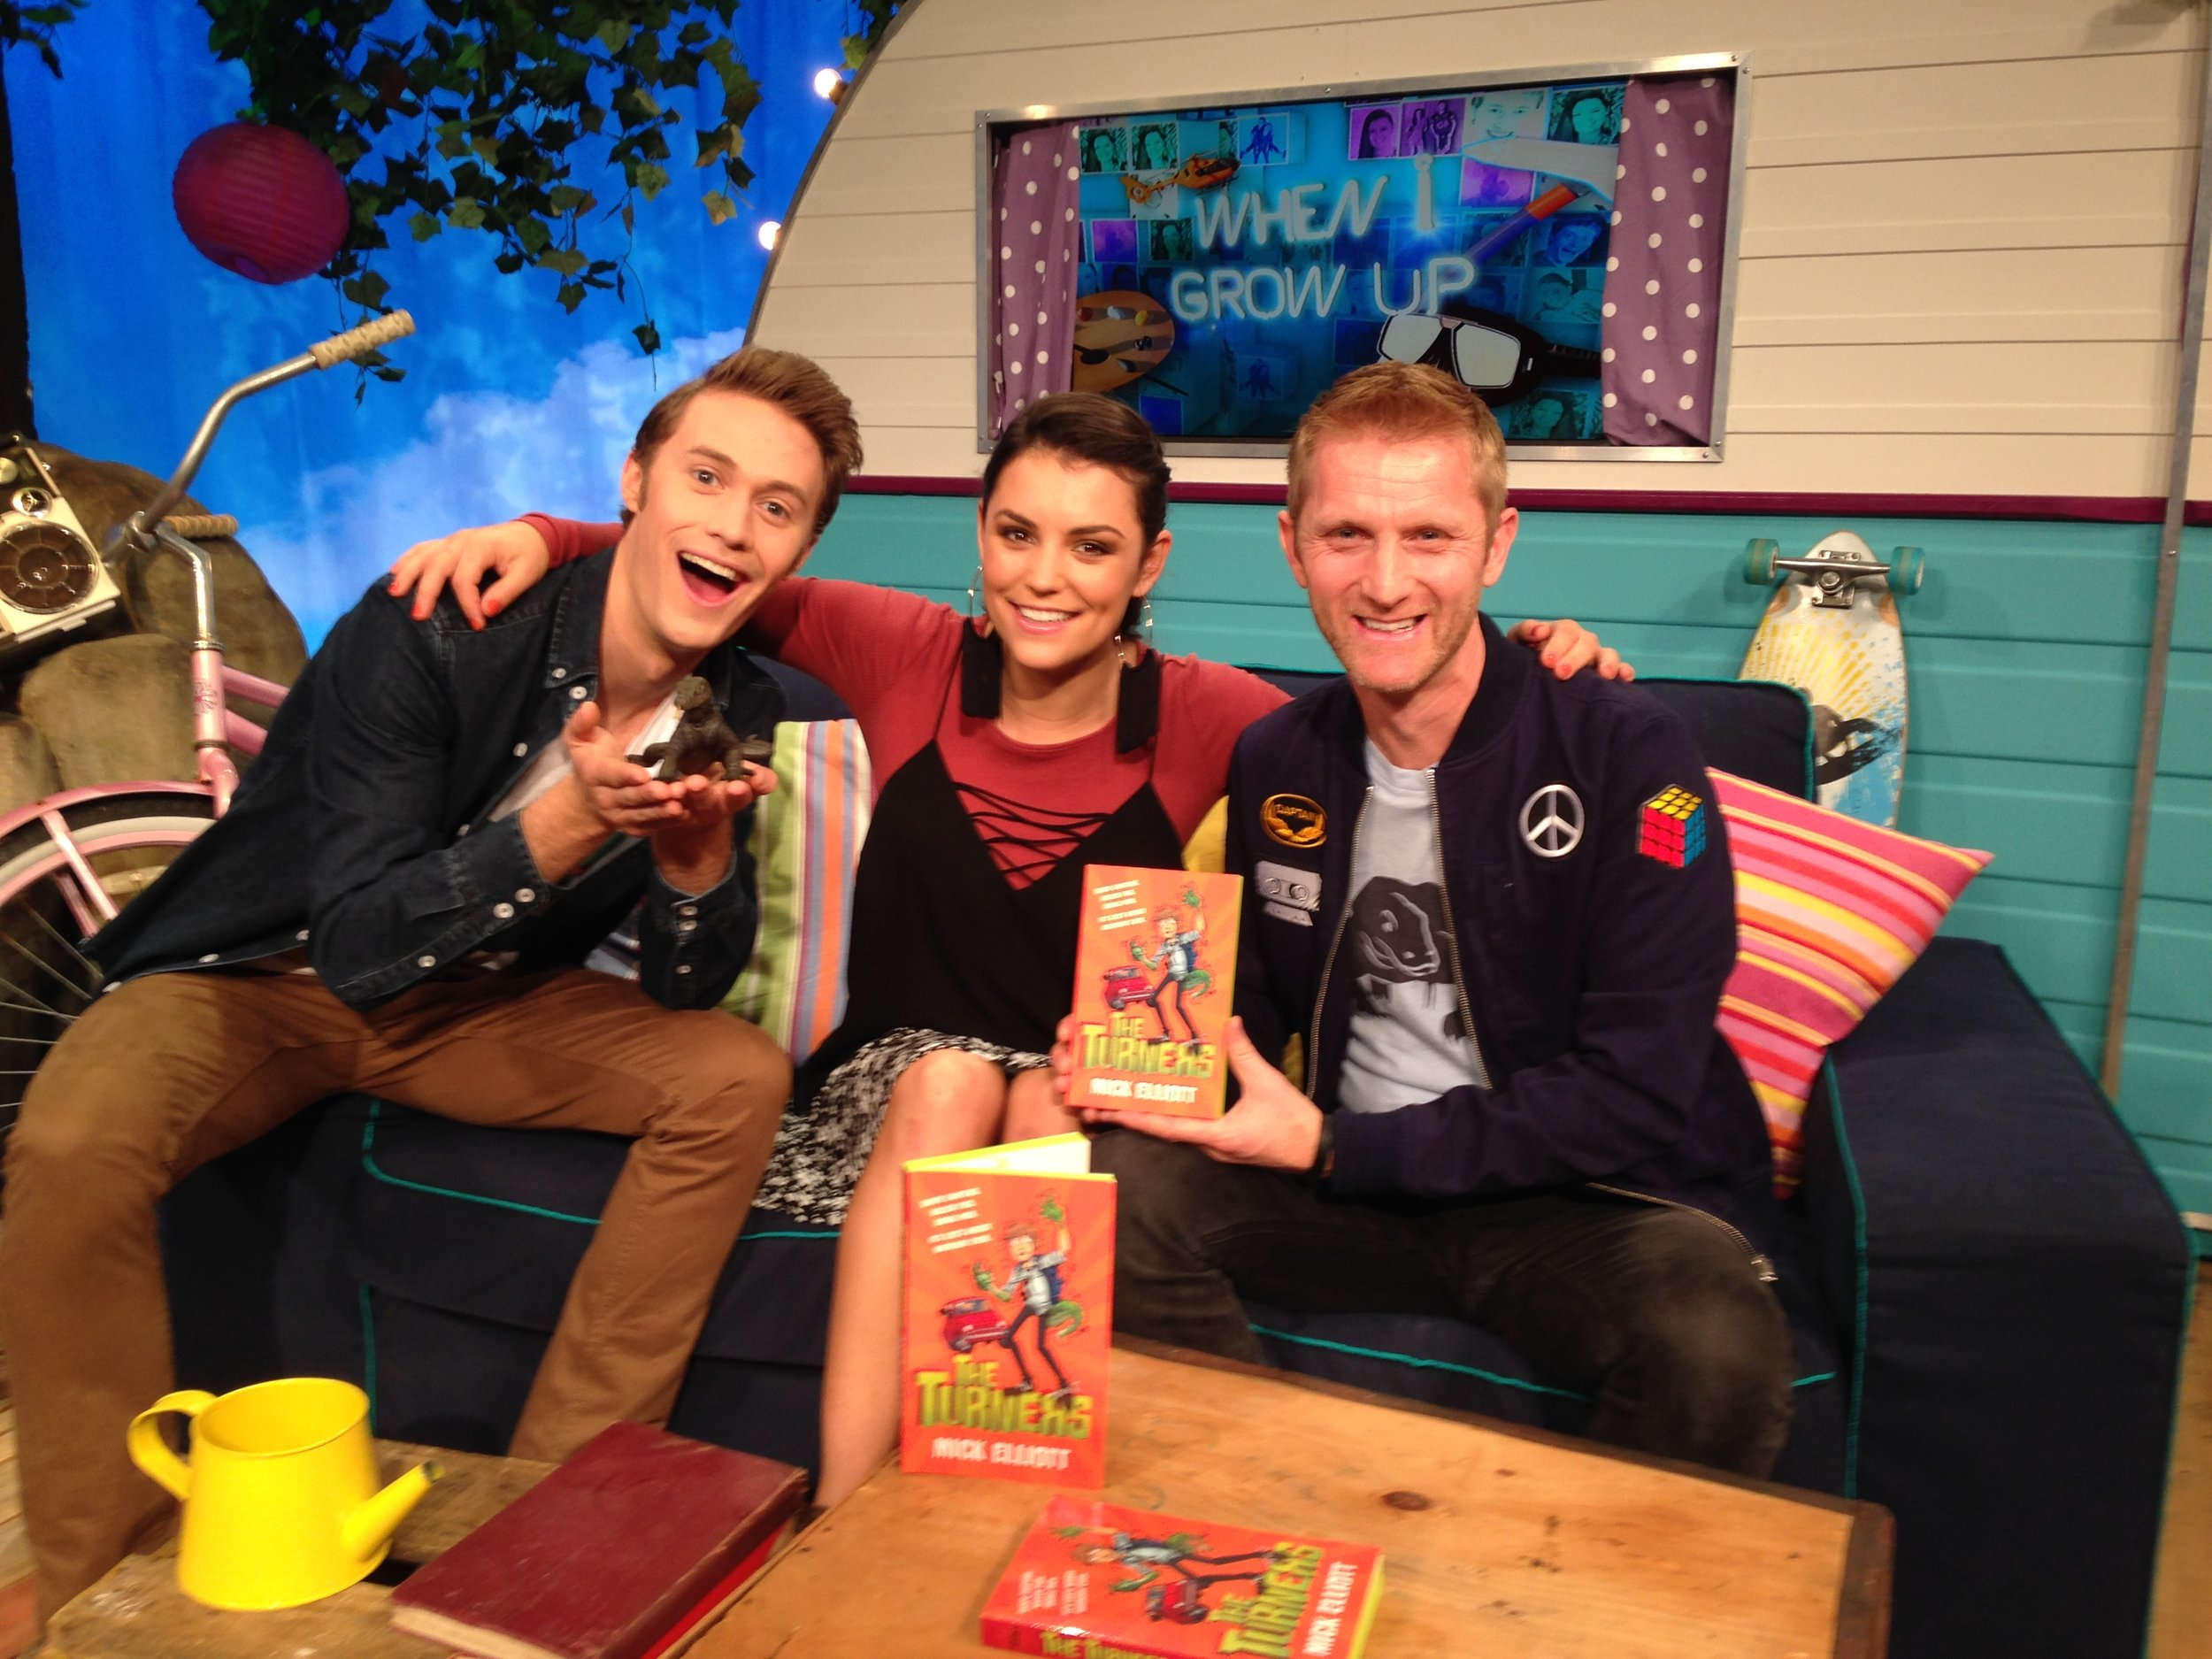 On set talking about writing tips for kids with Disney's Adam and Ash.